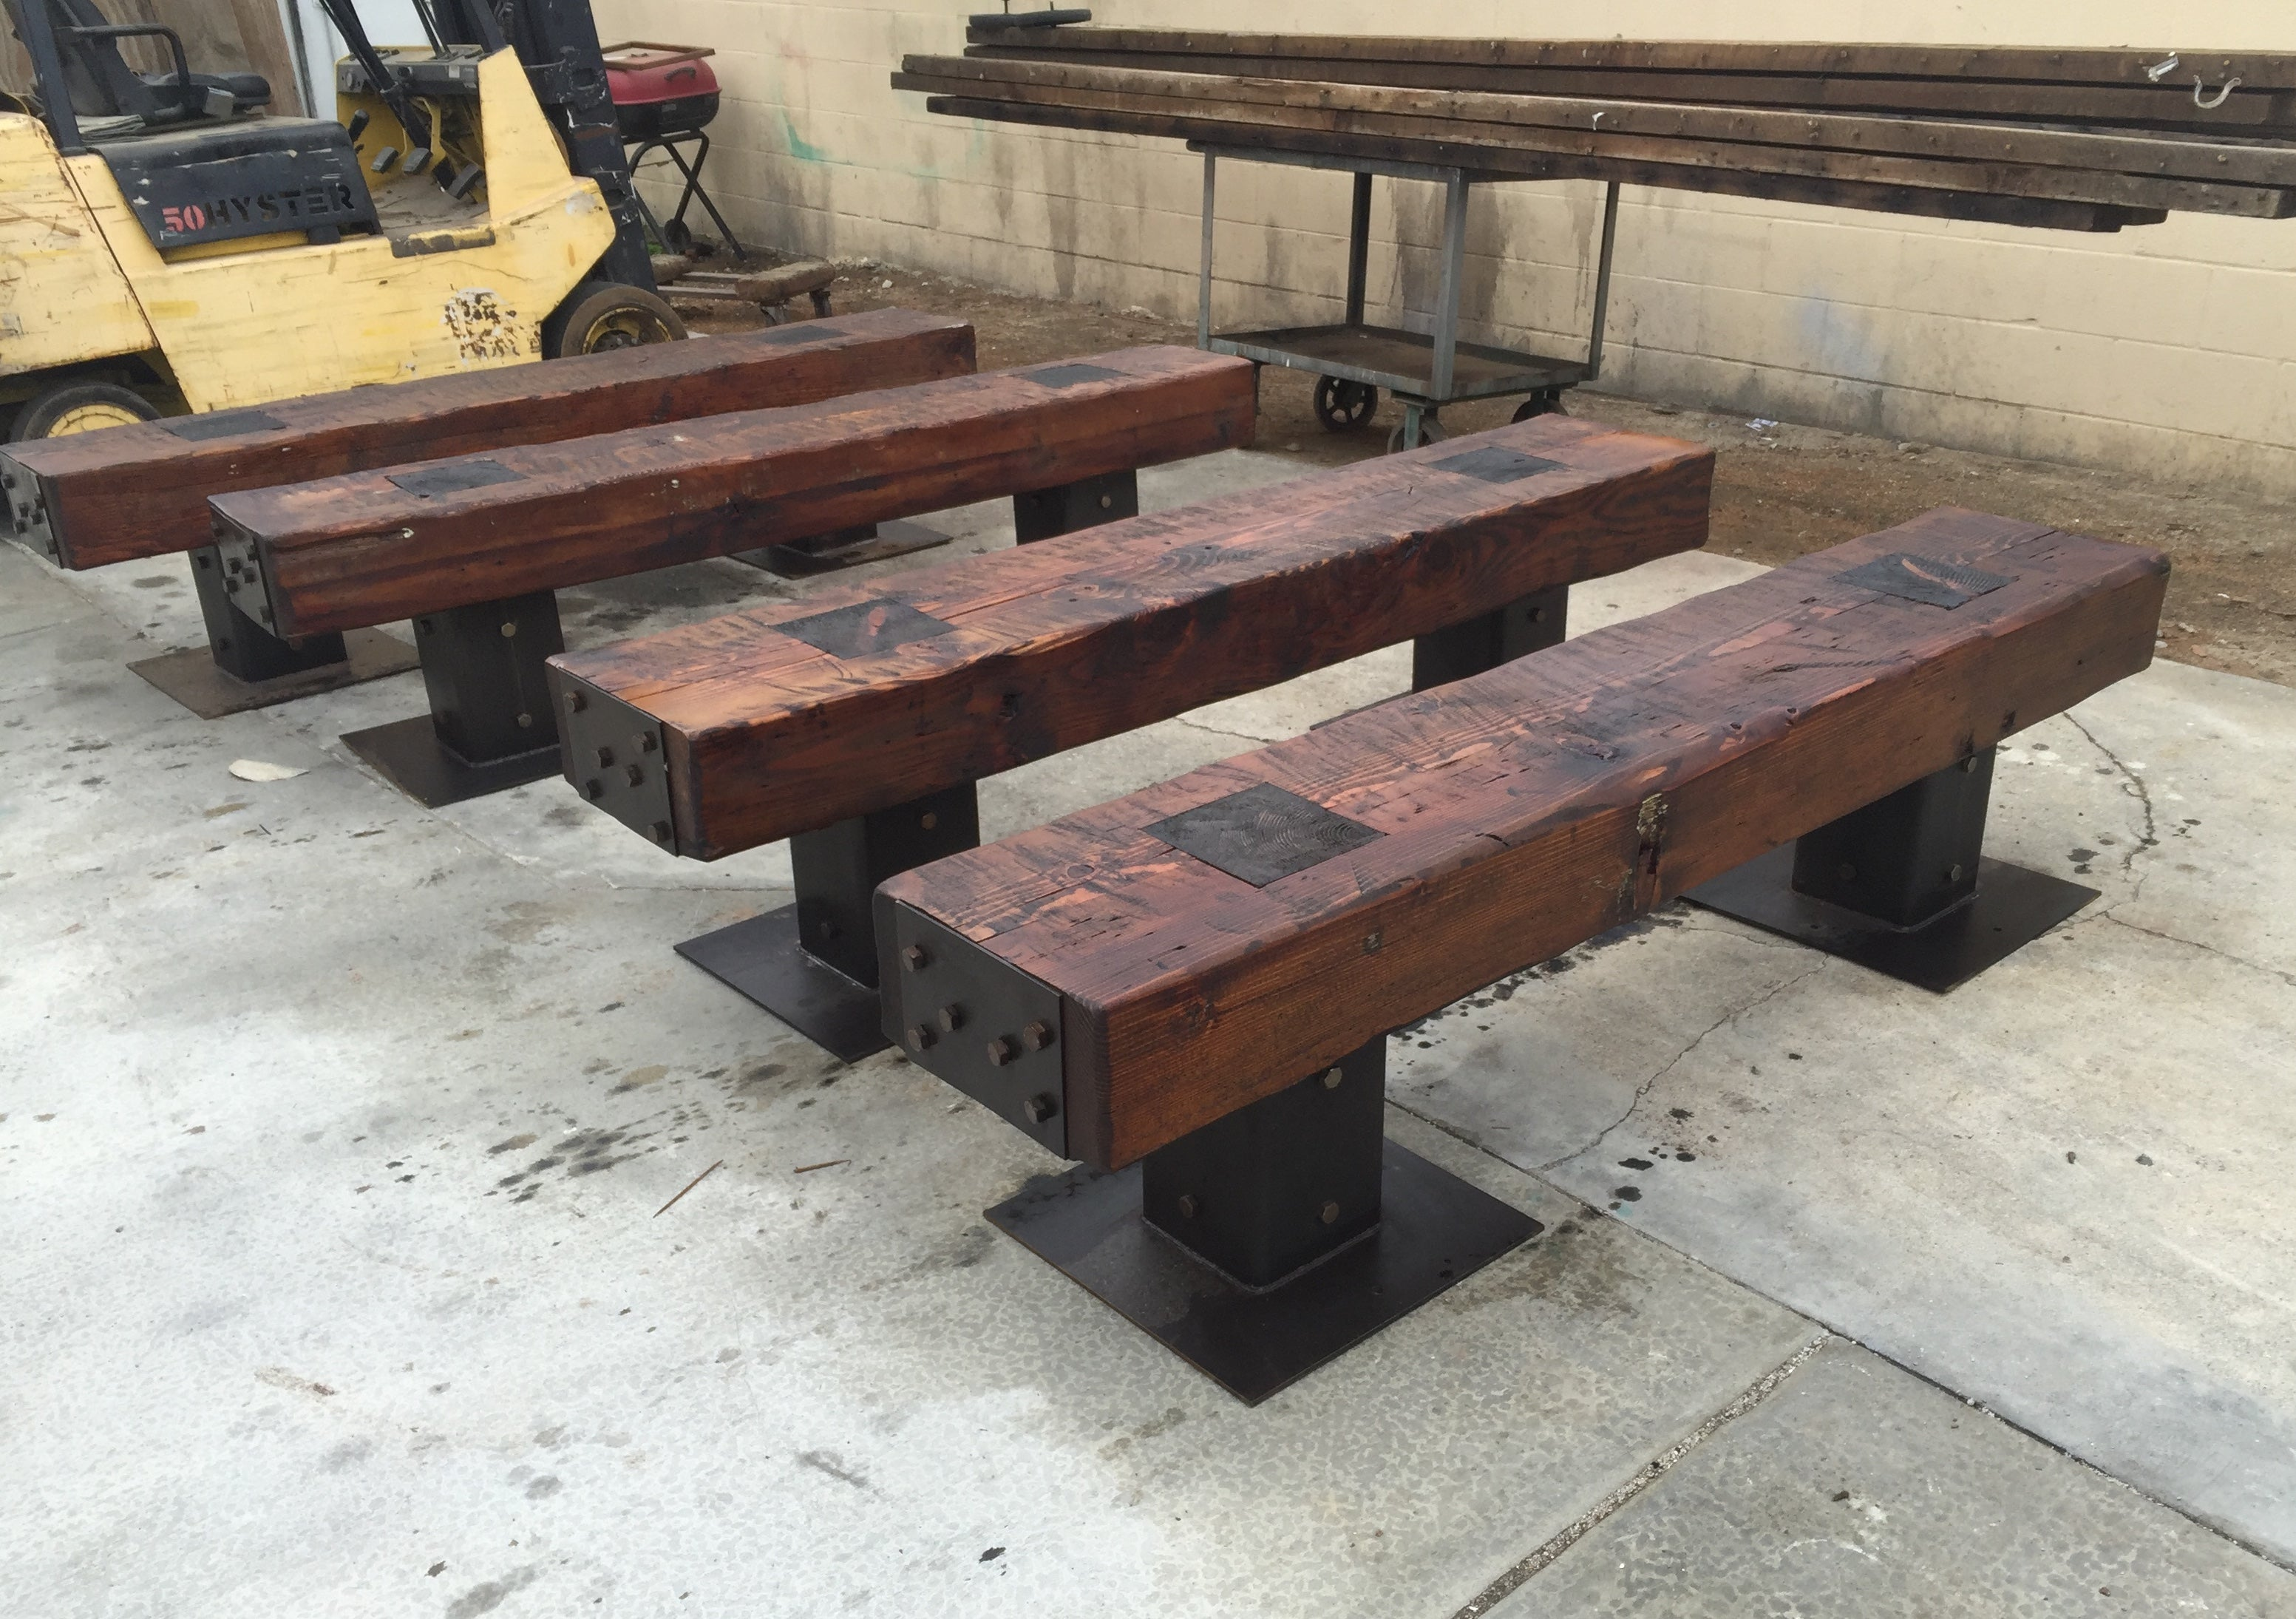 Fine Rustic Reclaimed Wood Outdoor Bench Mortise Tenon Machost Co Dining Chair Design Ideas Machostcouk